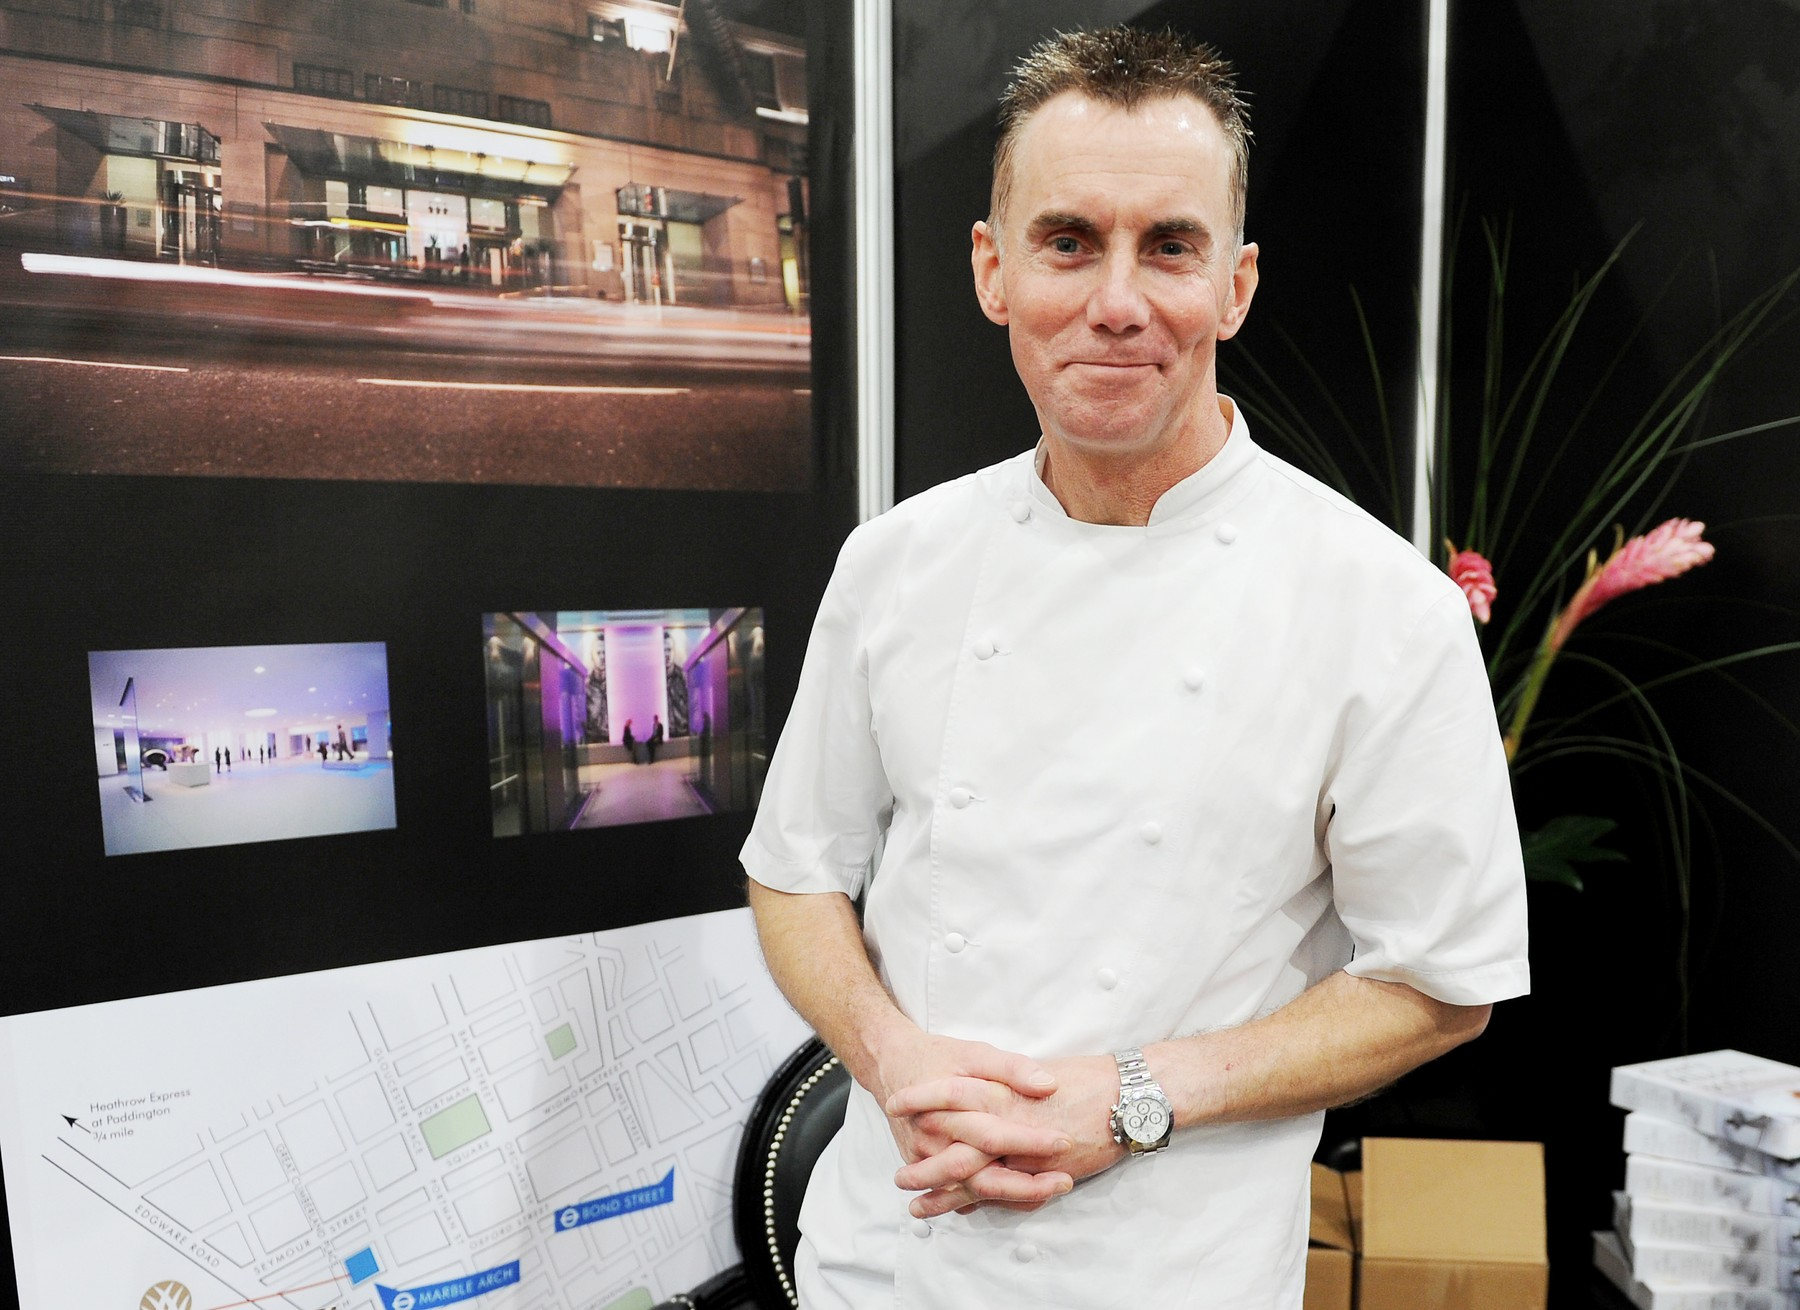 File photo dated 02/12/11 of Gary Rhodes in his pop-up restaurant at the Taste of Christmas food and drink festival at ExCeL Centre, London. TV Chef Gary Rhodes, 59, passed away on Tuesday evening, his family have announced., Image: 485081078, License: Rights-managed, Restrictions: FILE PHOTO, Model Release: no, Credit line: Georgie Gillard / PA Images / Profimedia